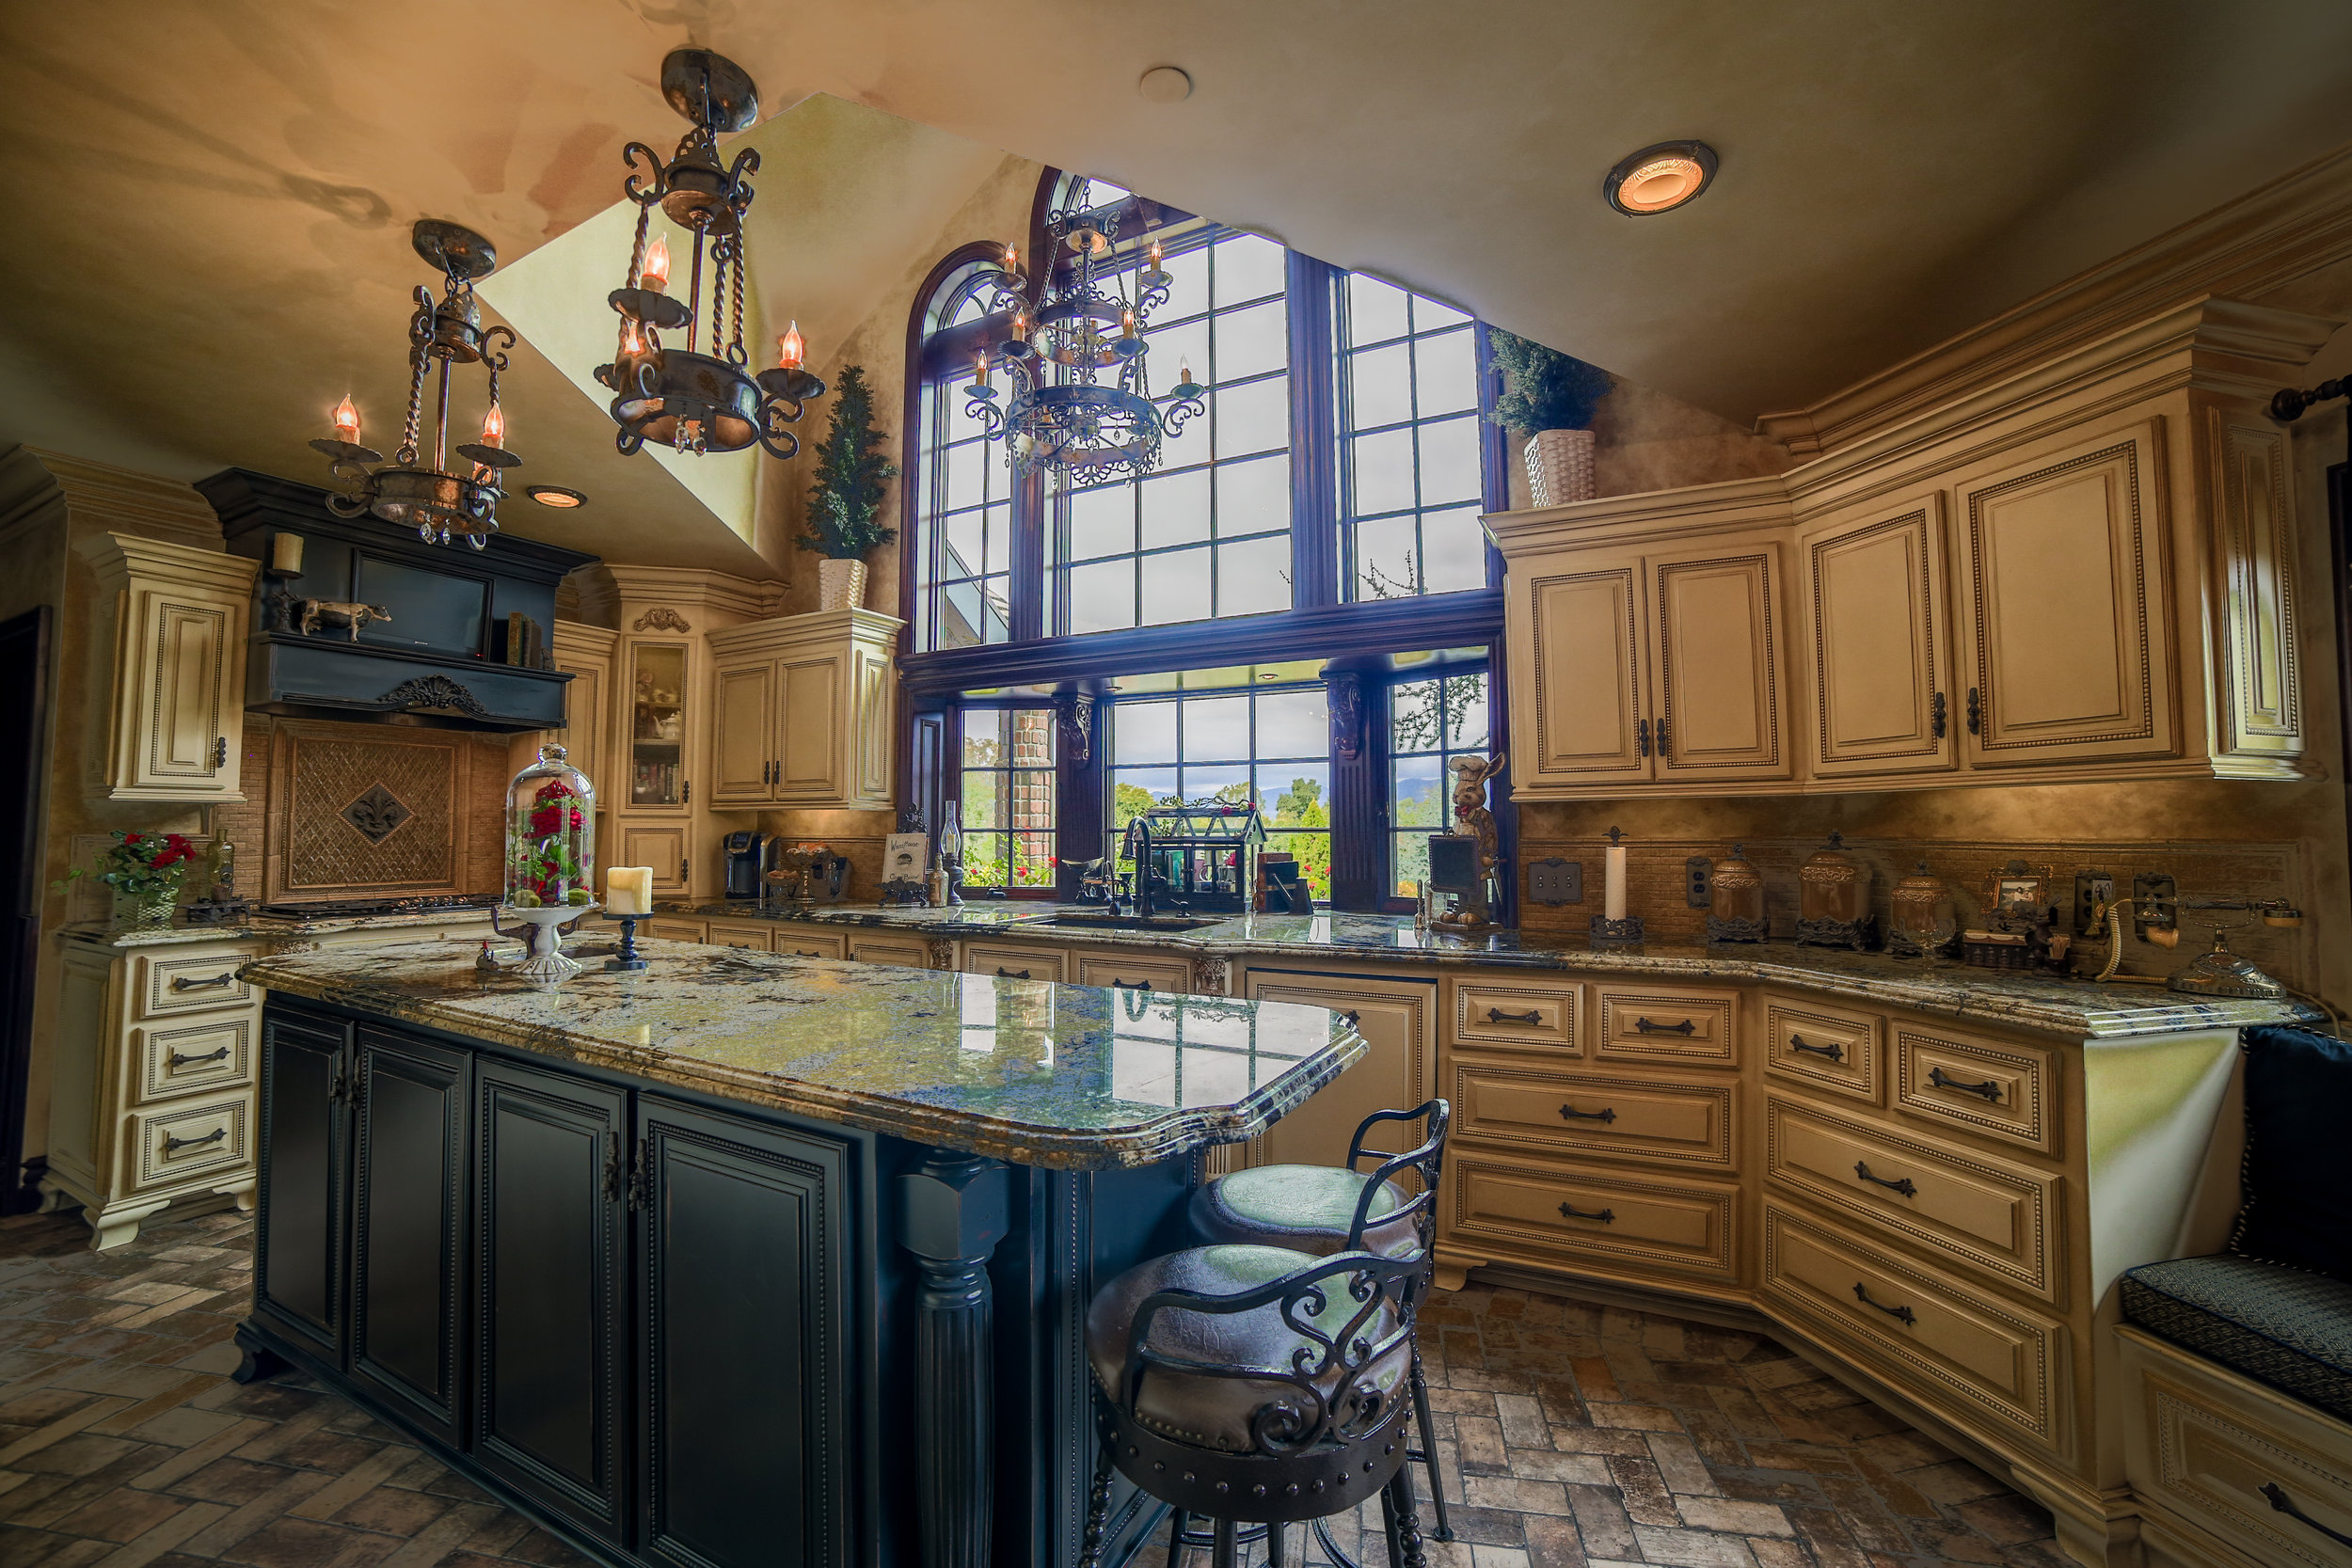 Real Estate Photography of Large Kitchen